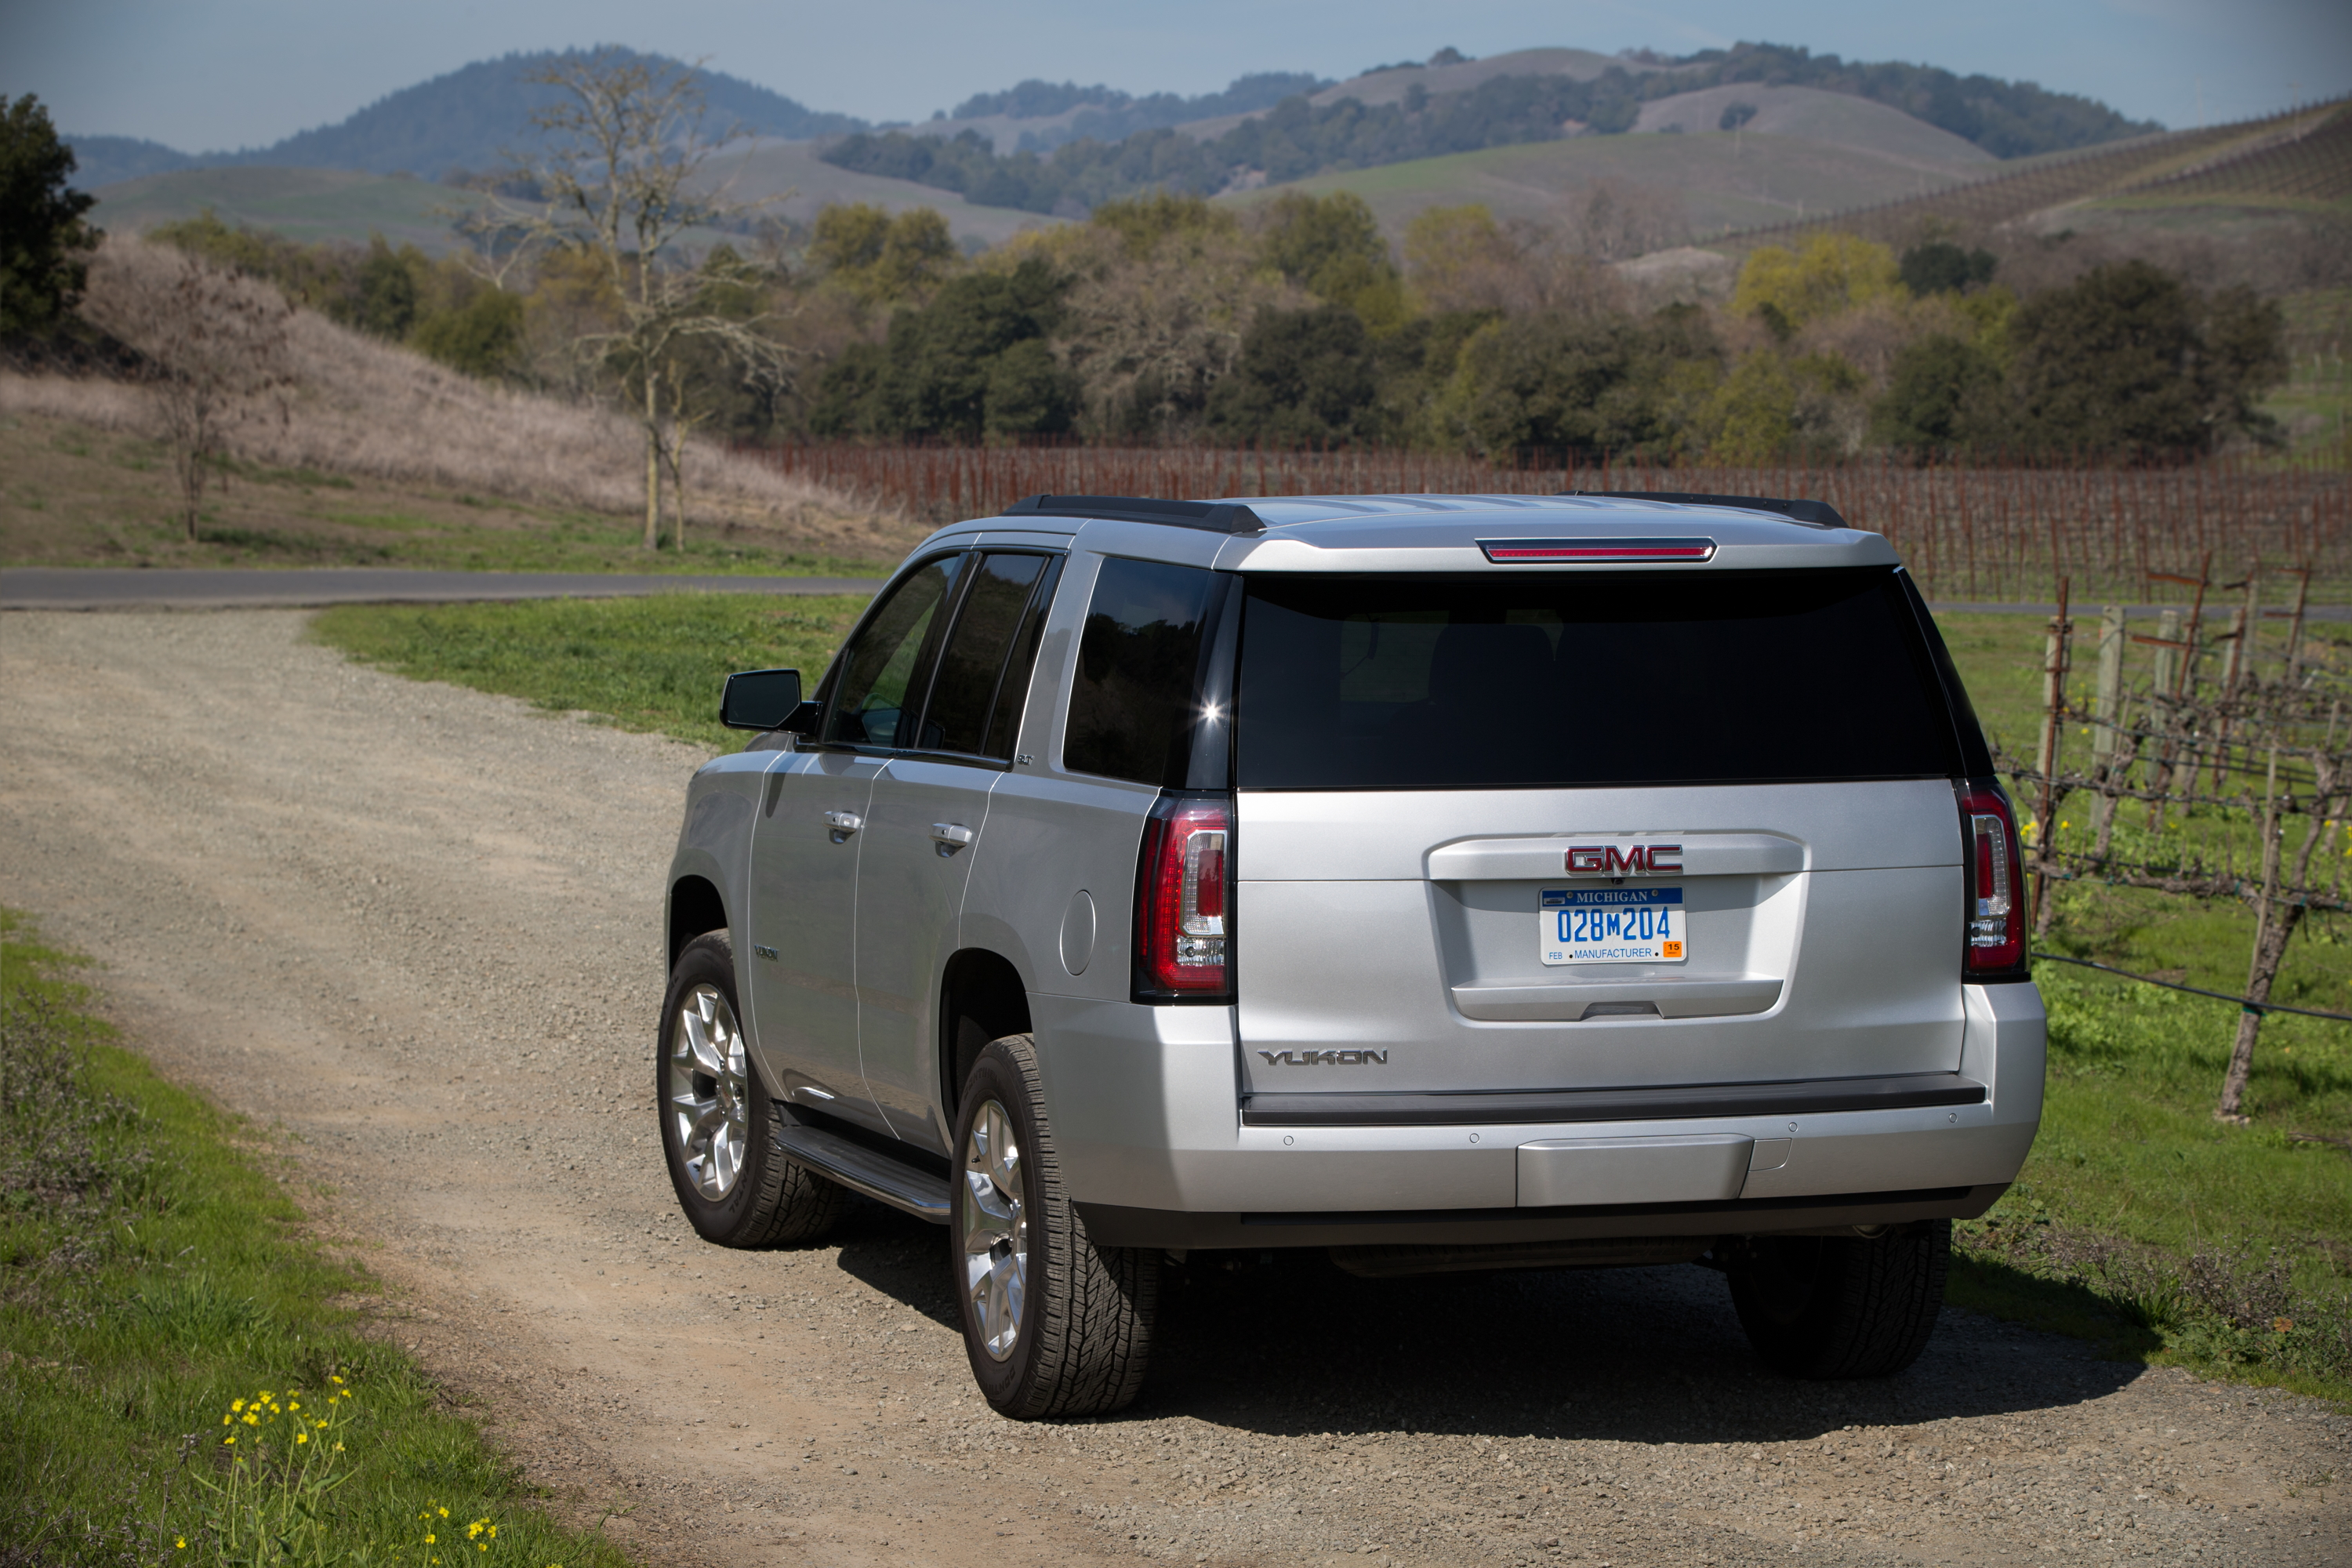 xl yukon denali content detail gmc states us images galleries media vehicles pressroom united en photos pages yukonxl